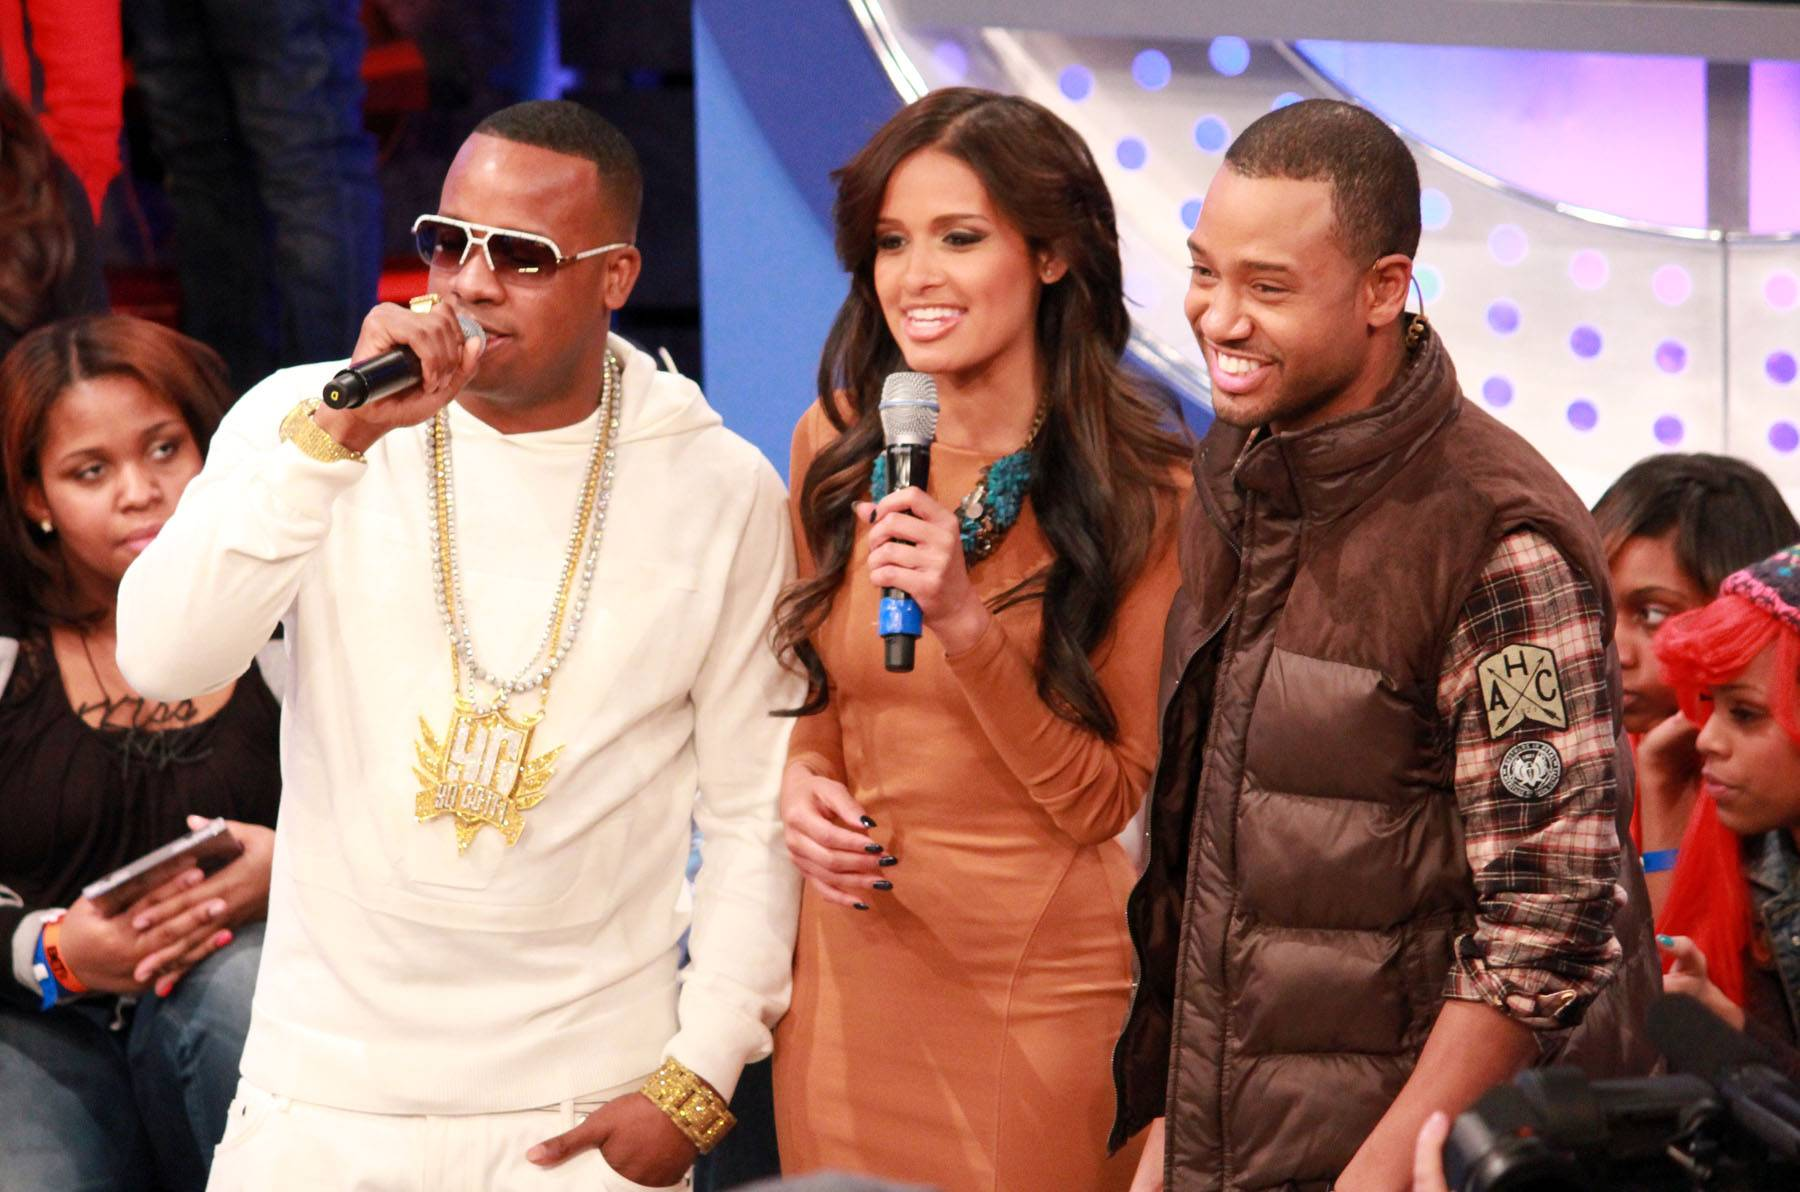 It's Cooking - Yo Gotti on set at 106 & Park. (photo by: Slim)